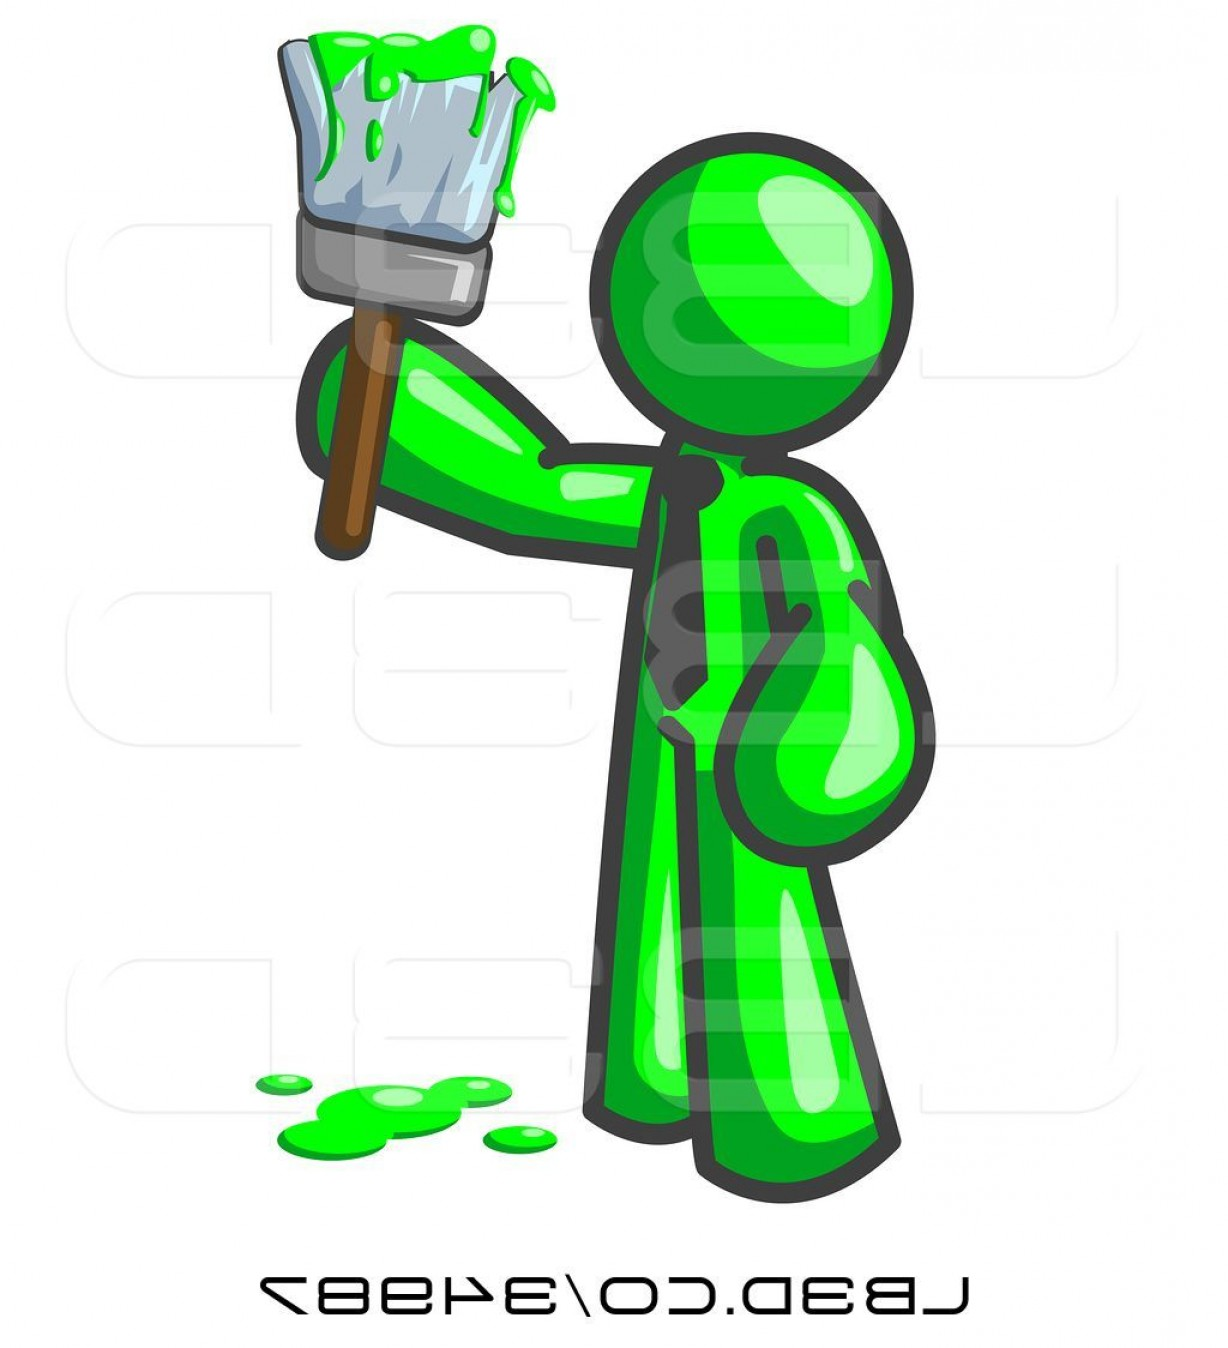 Dripping Paint Vector Illustration: Vector Illustration Of Lime Green Guy Painter Holding A Dripping Paint Brush By Leo Blanchette